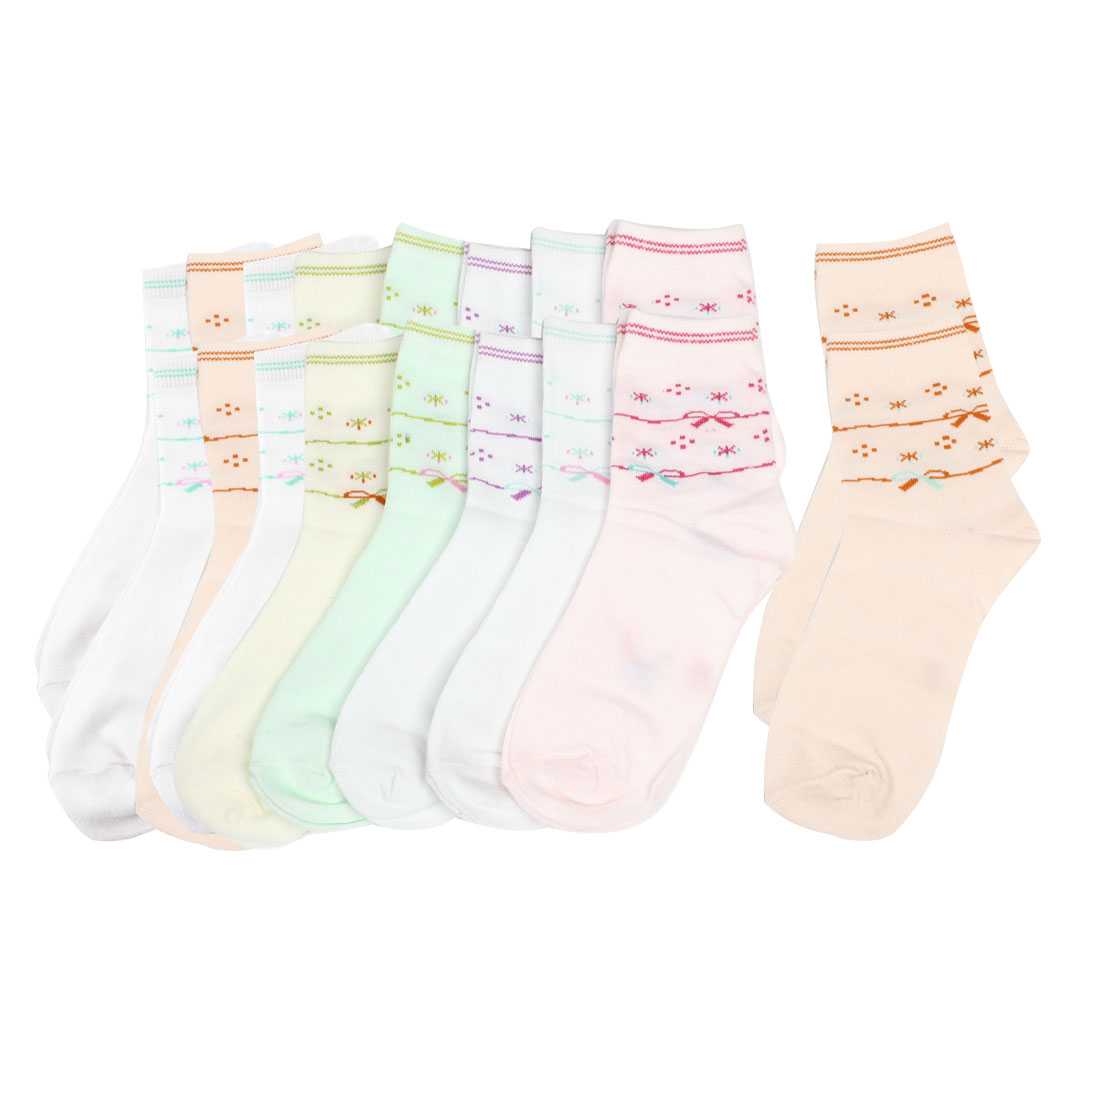 9 Pair Multicolor Bowknots Print Hosiery Ankle High Socks for Girls